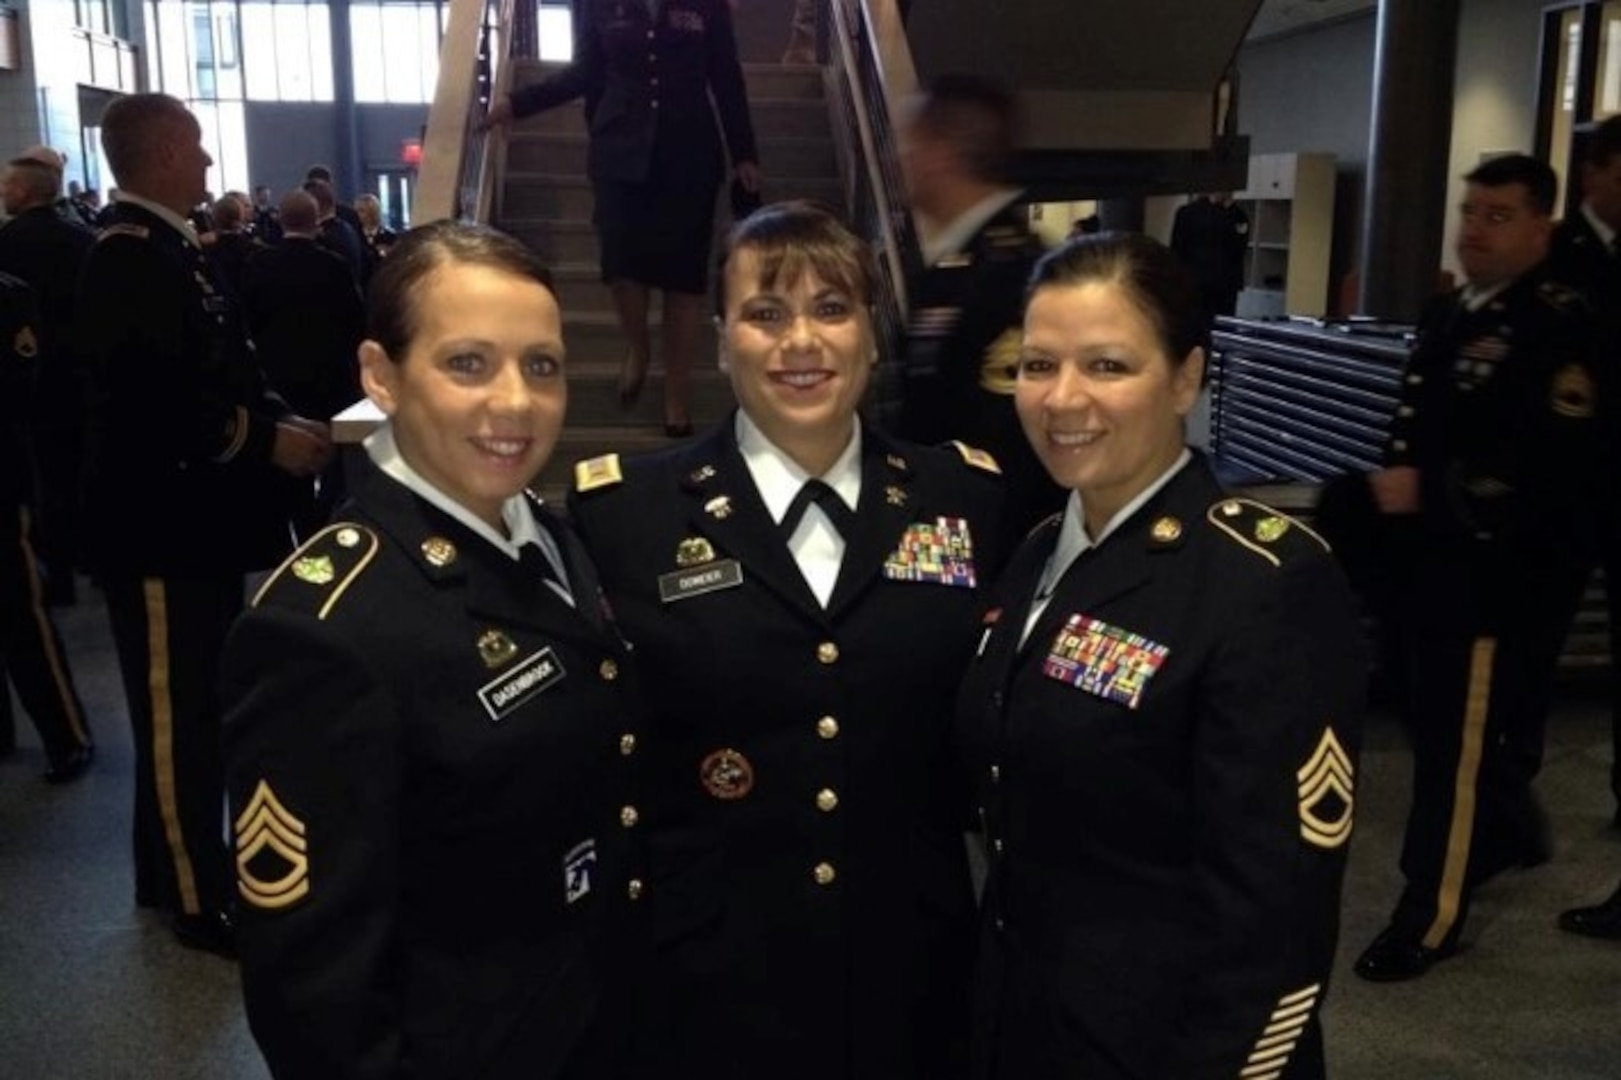 From left, then-Staff Sgt. Mellessa Dasenbrock, then-Chief Warrant Officer 4 Teresa Domeier and then-Sgt. 1st Class Bonnie Frazier, sisters who all served in the Nebraska National Guard. Domeier was nominated as the Army National Guard's first female command chief warrant officer in June 2018.